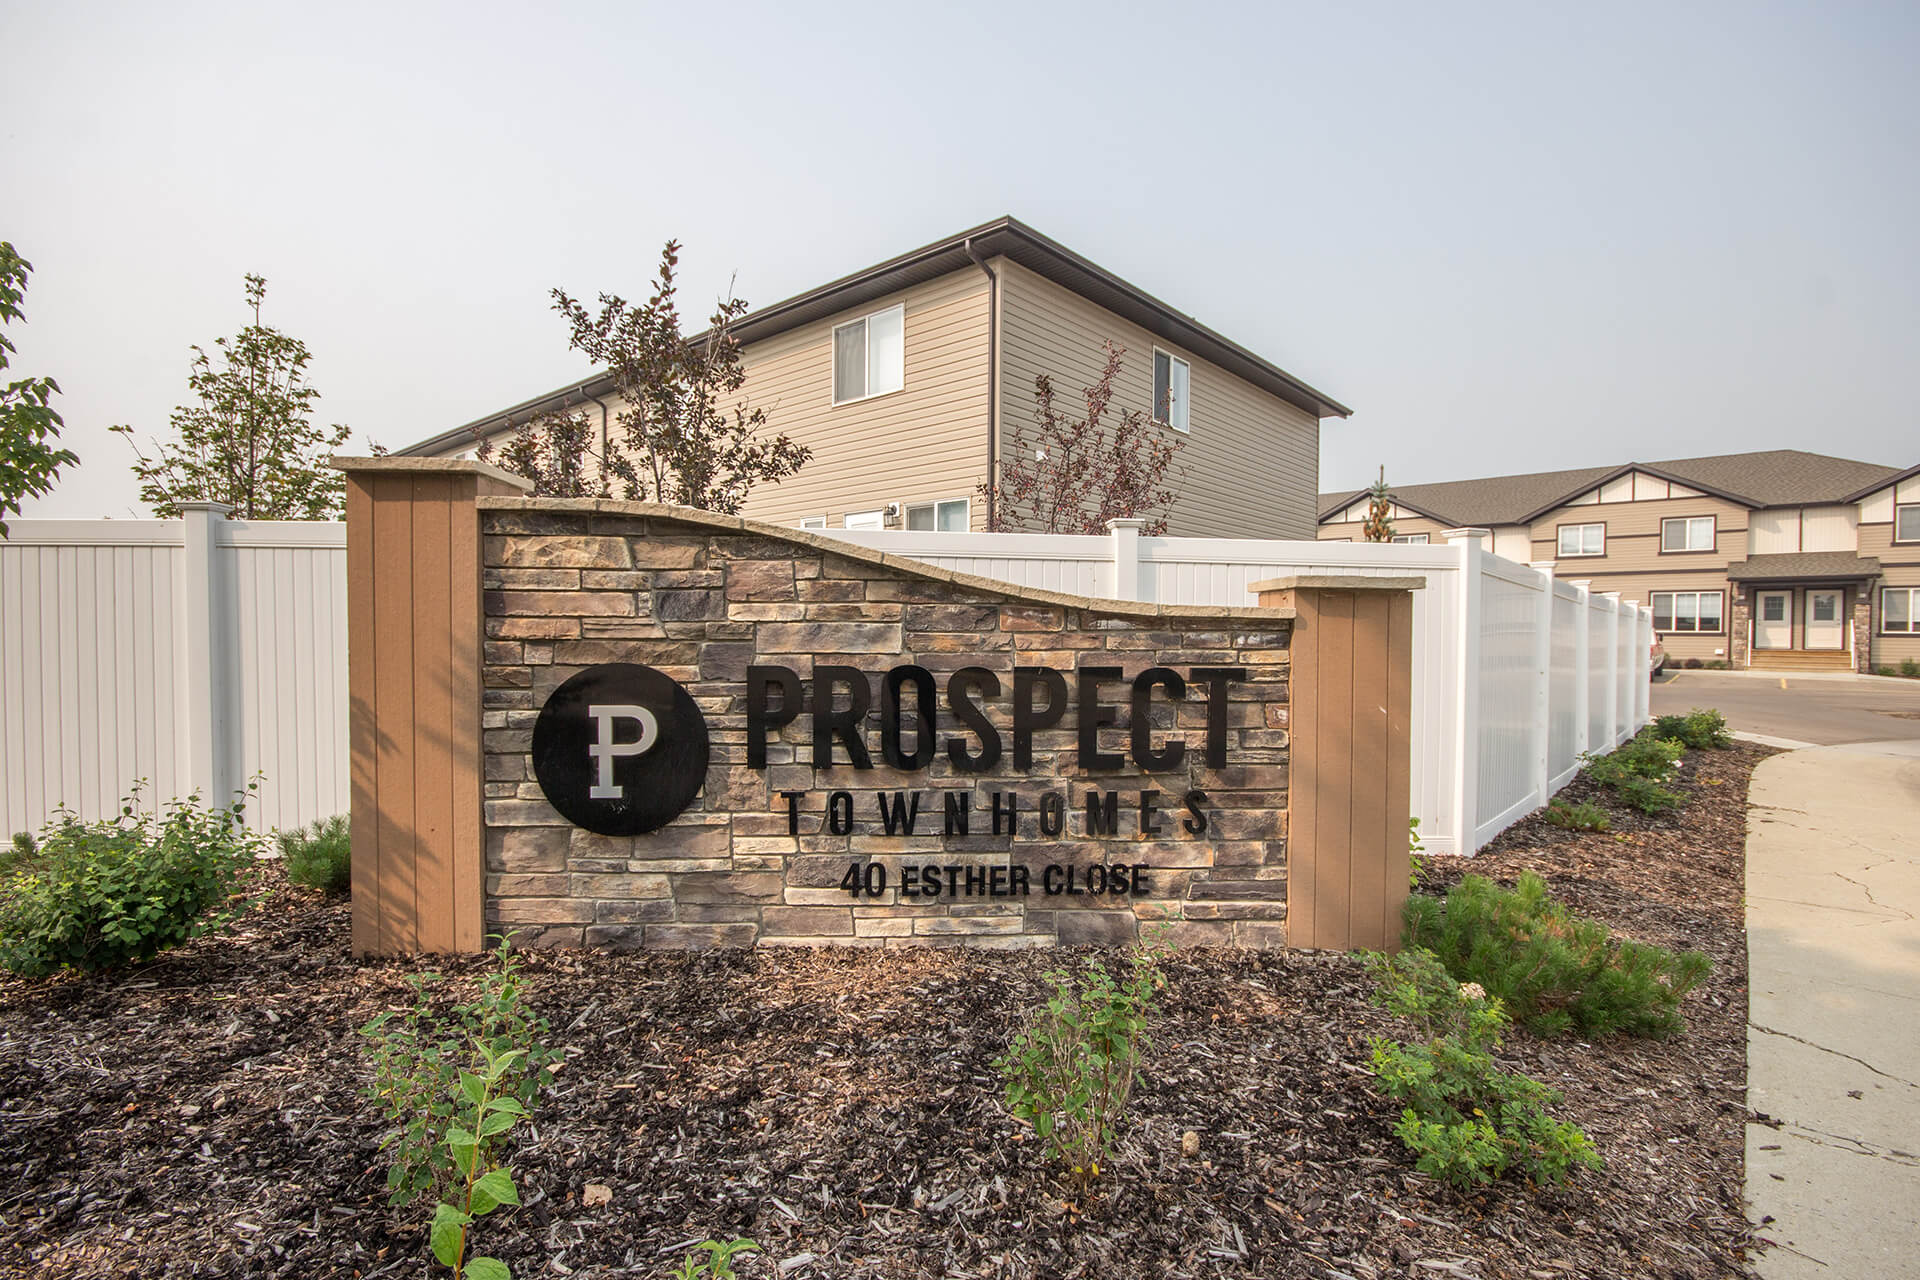 Image of the exterior of Prospect Townhomes